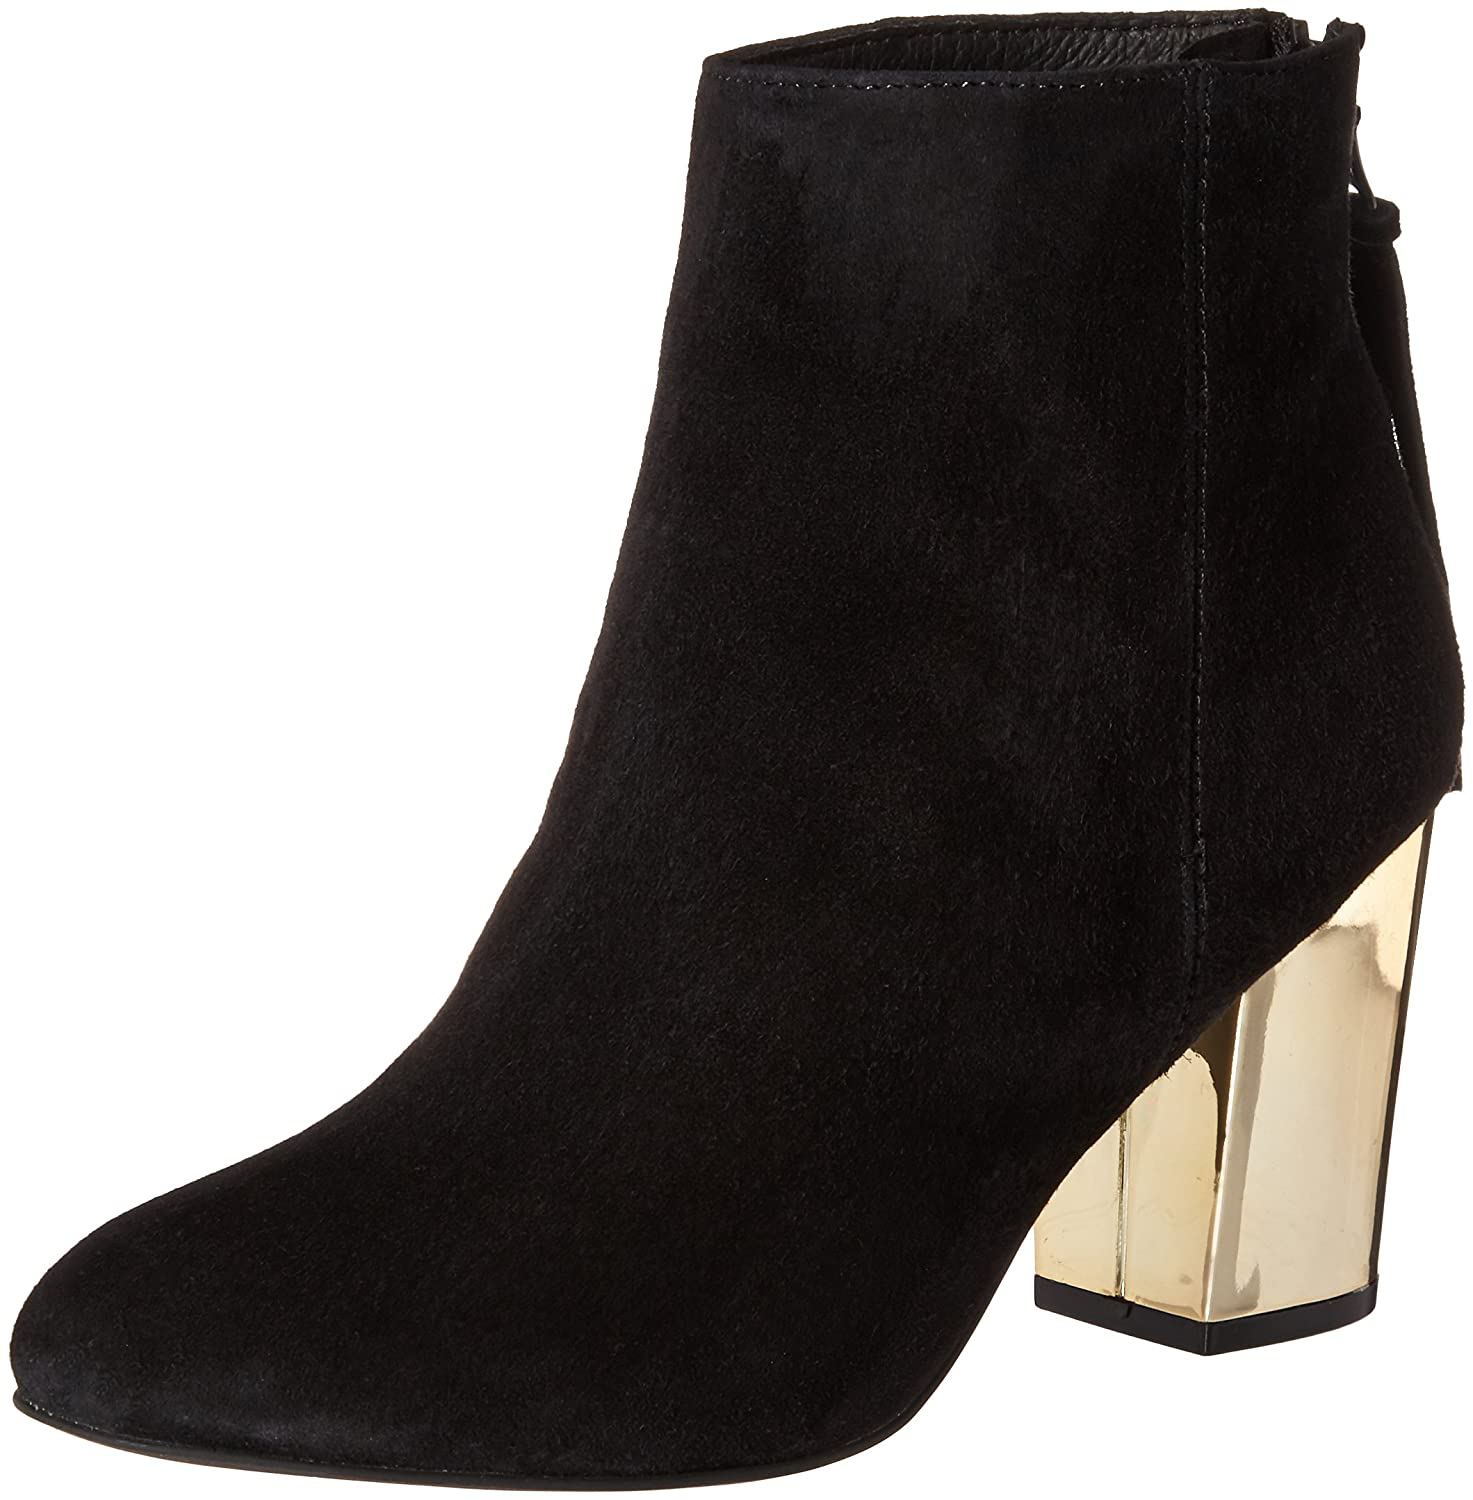 Cynthiam Ankle Bootie, Black Suede/Gold